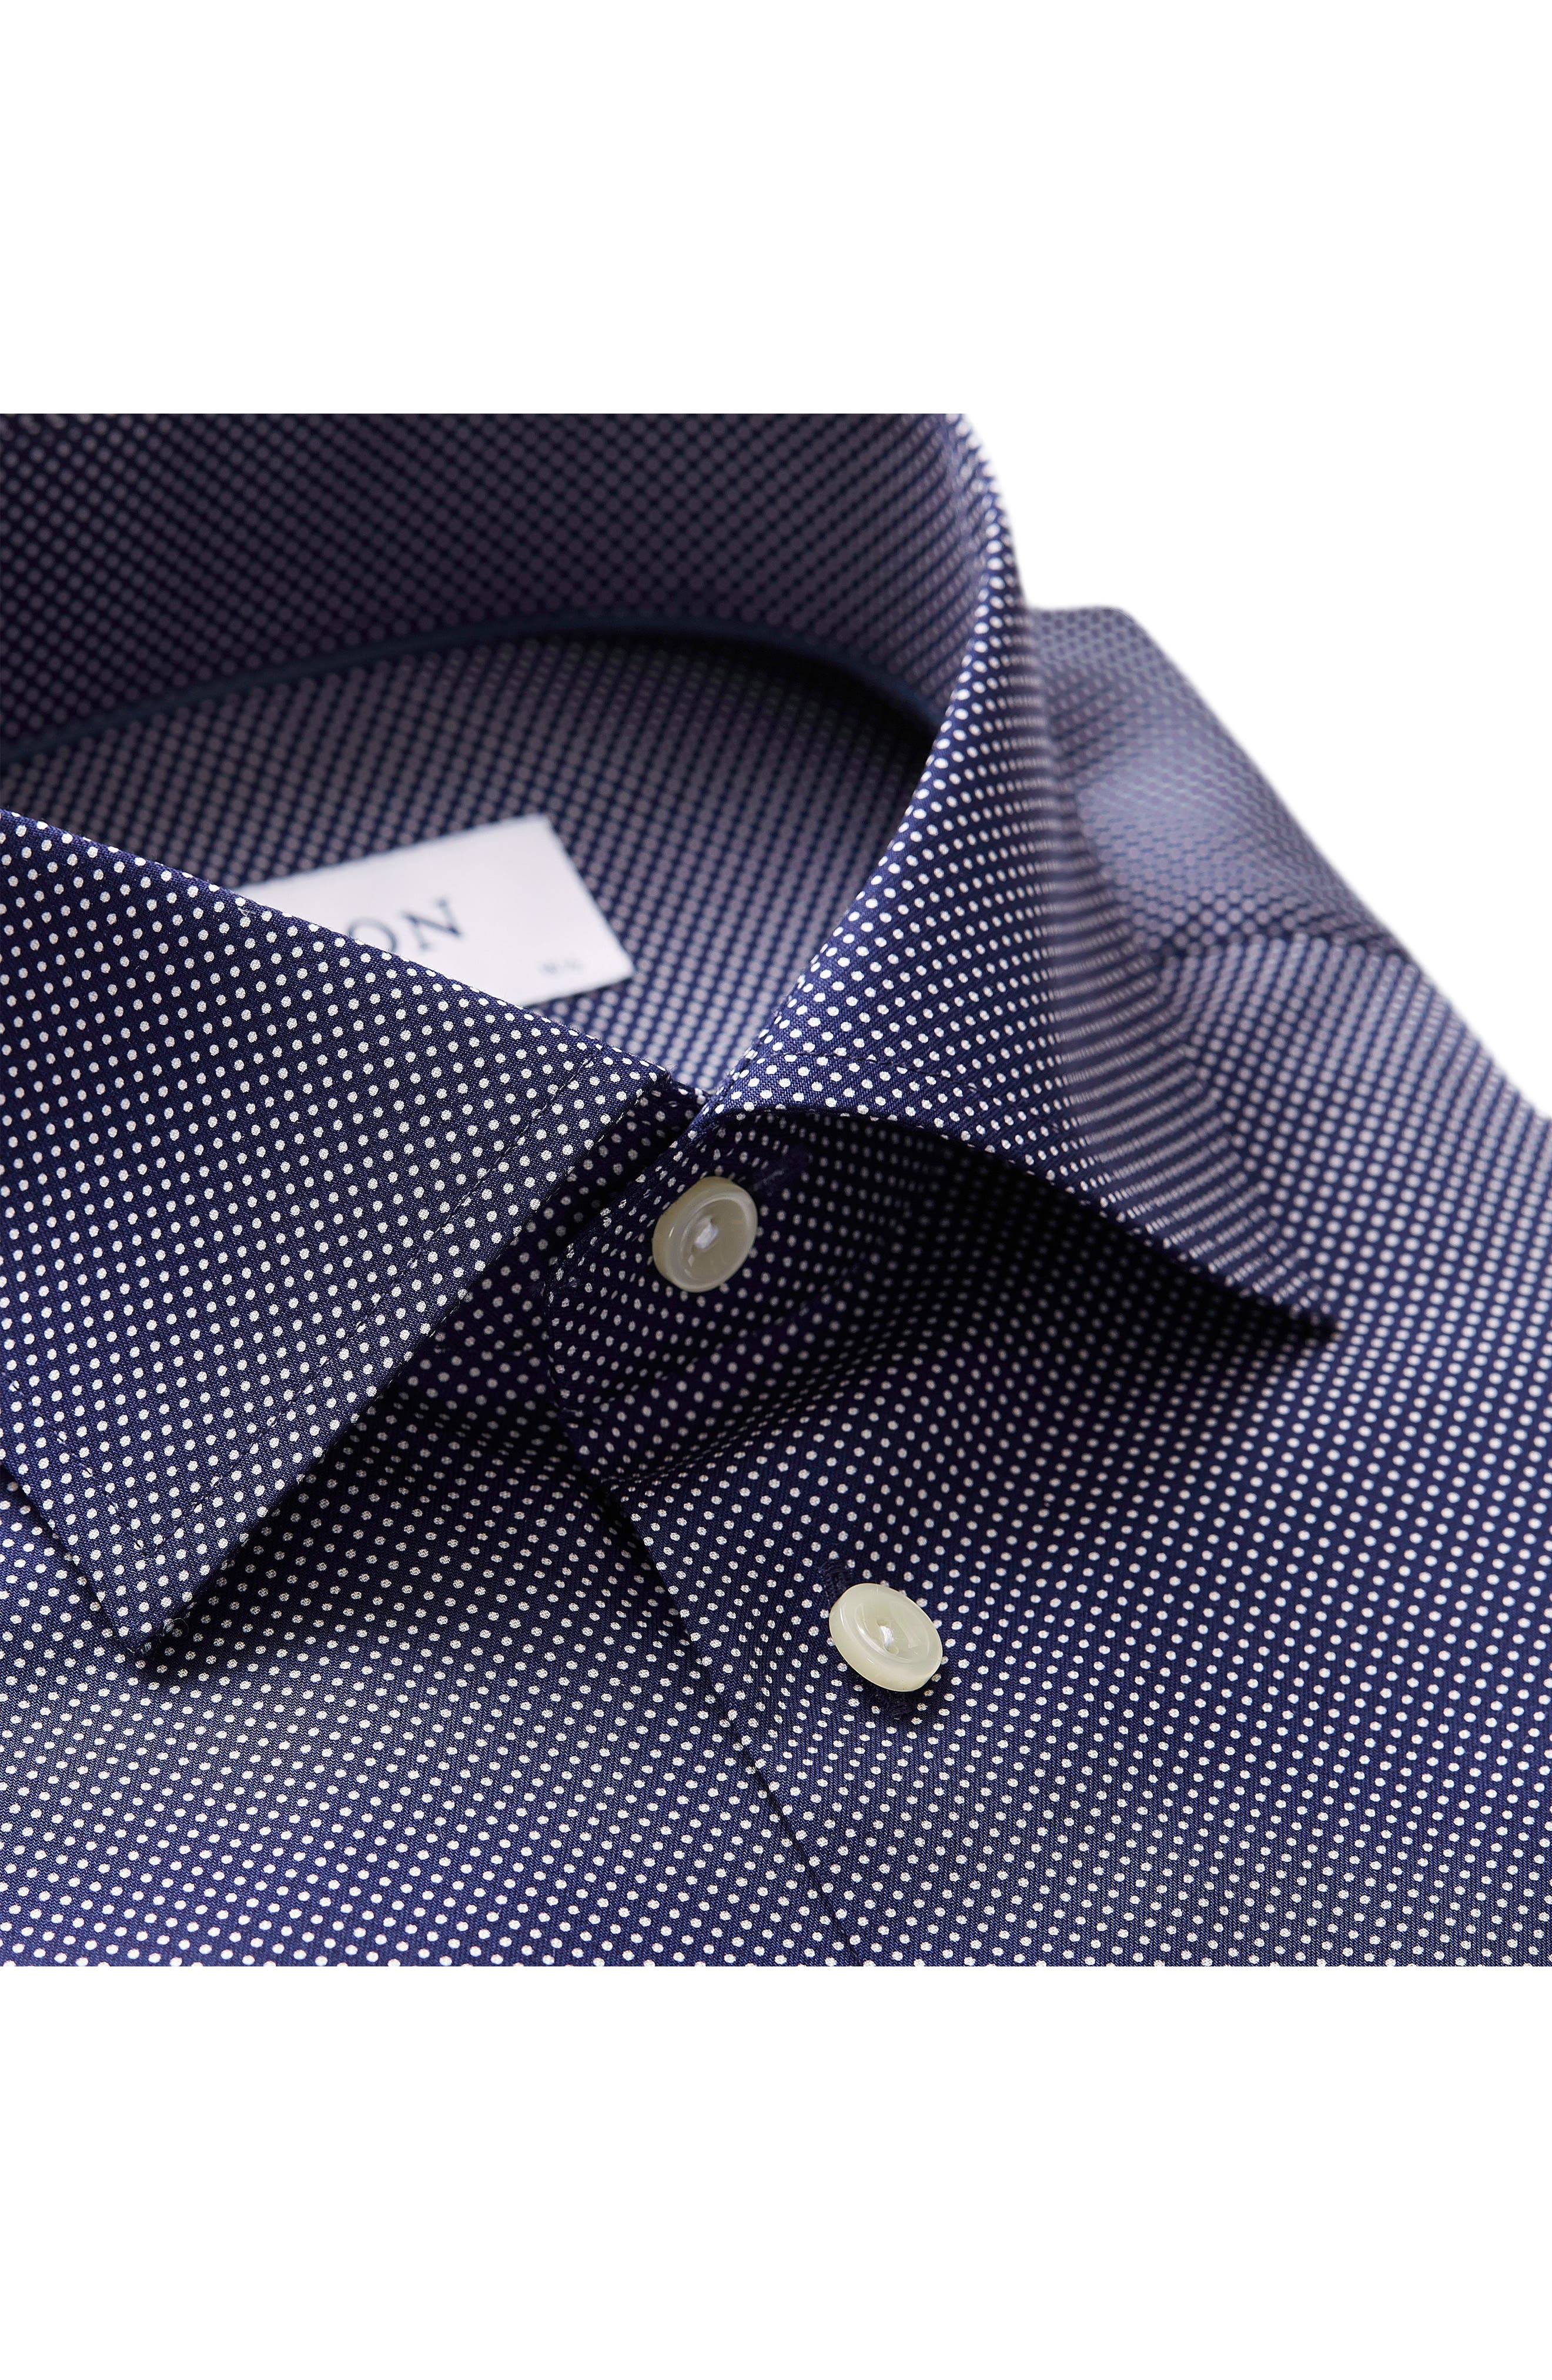 Contemporary Fit Signature Polka Dot Dress Shirt,                             Alternate thumbnail 4, color,                             BLUE